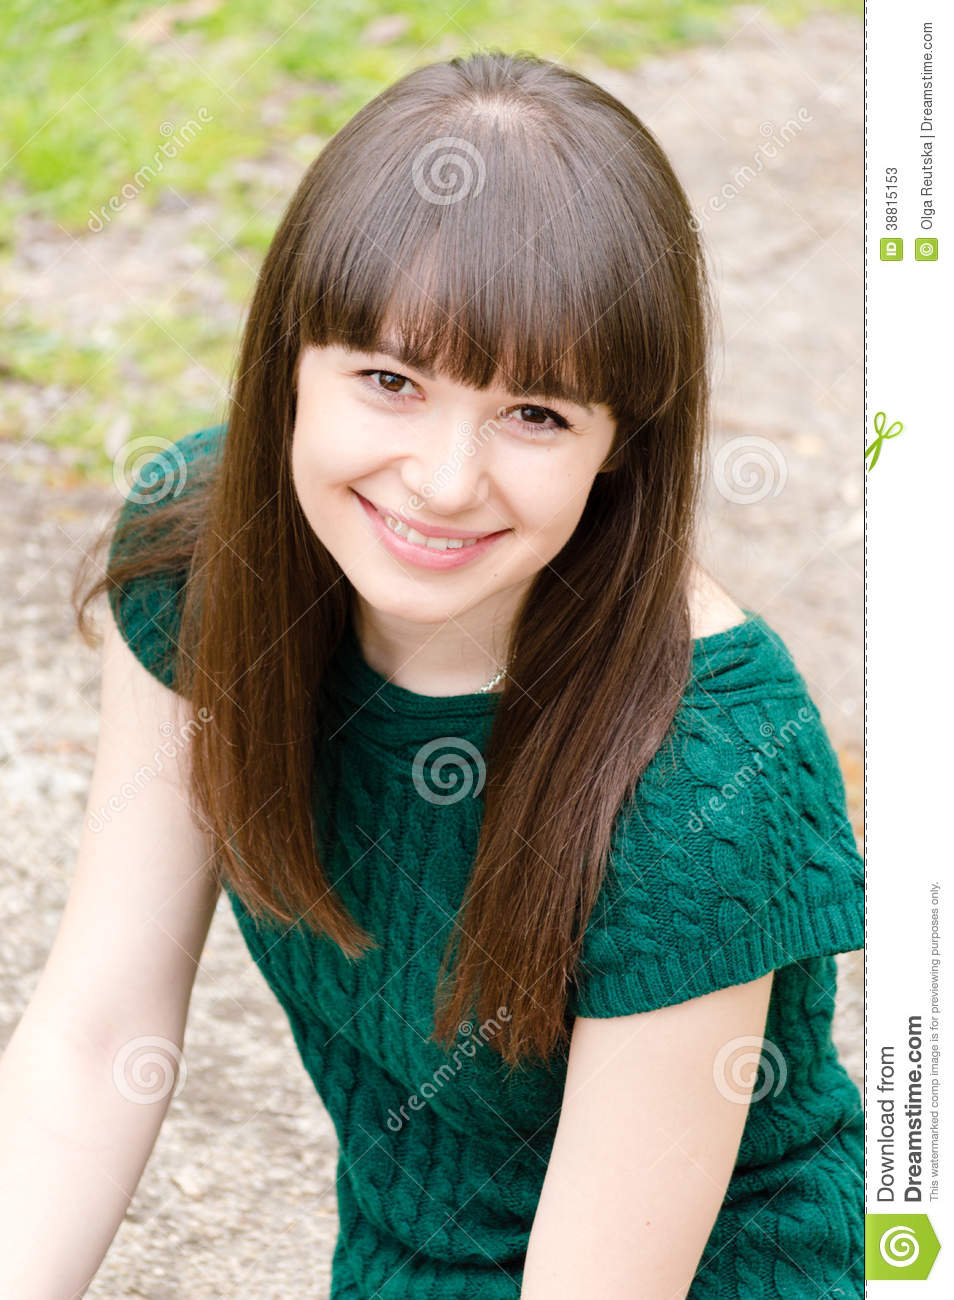 Closeup portrait of young beautiful woman brunette girl sitting outdoors happy smiling & looking at camera